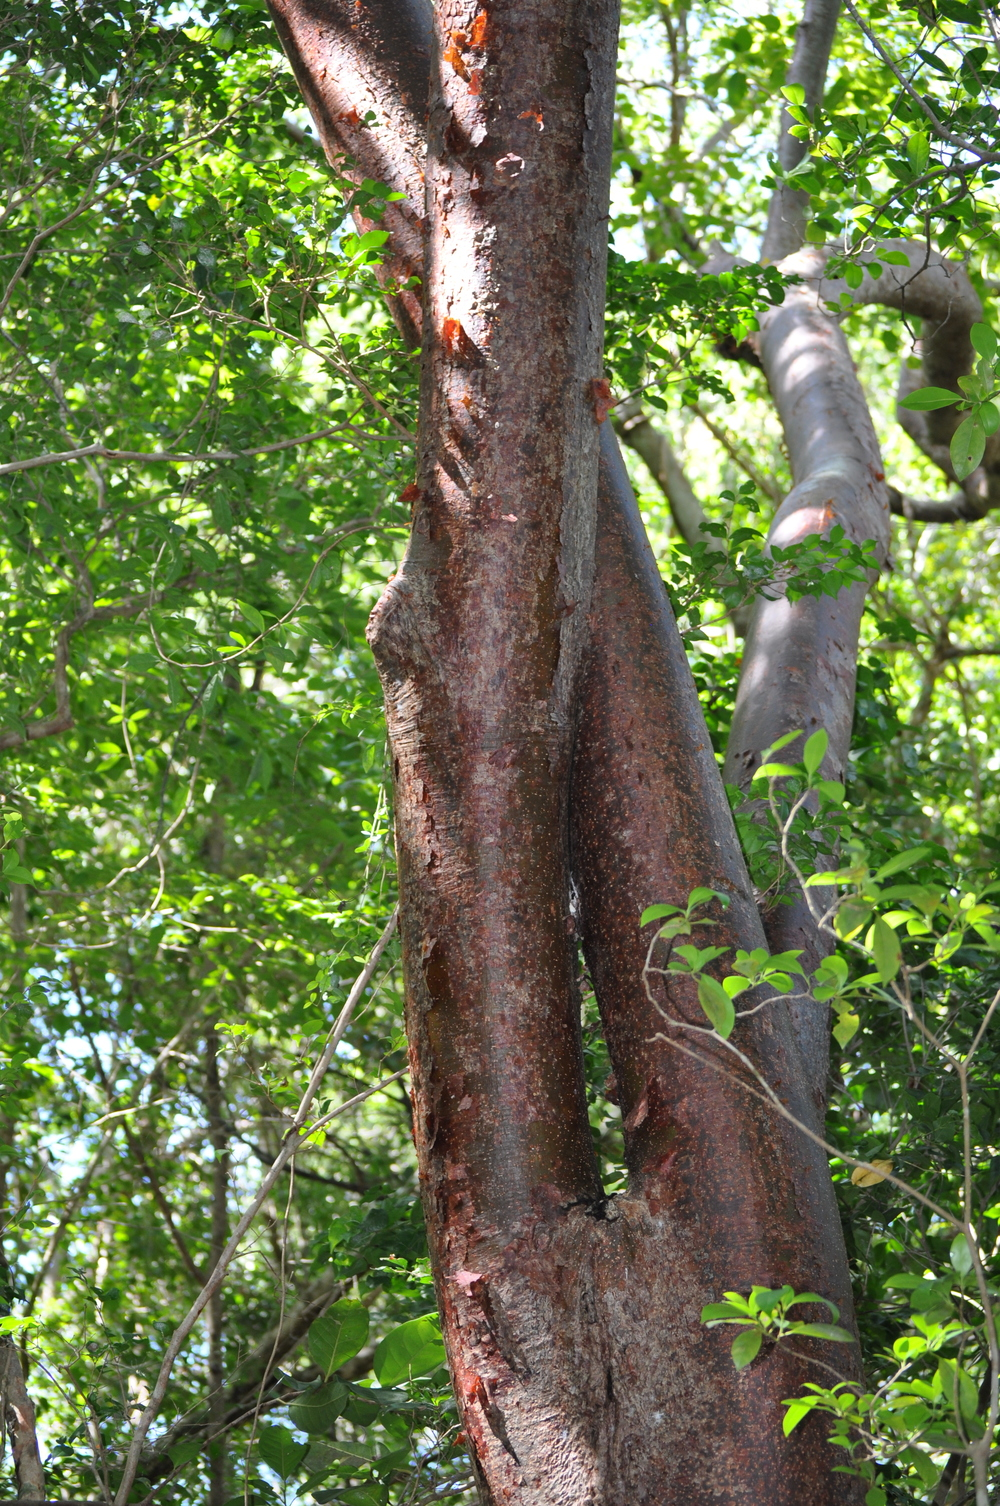 The bark of the turpentine-tree has all the nutrients necessary to sustain human life. Photo: Pamy Rojas